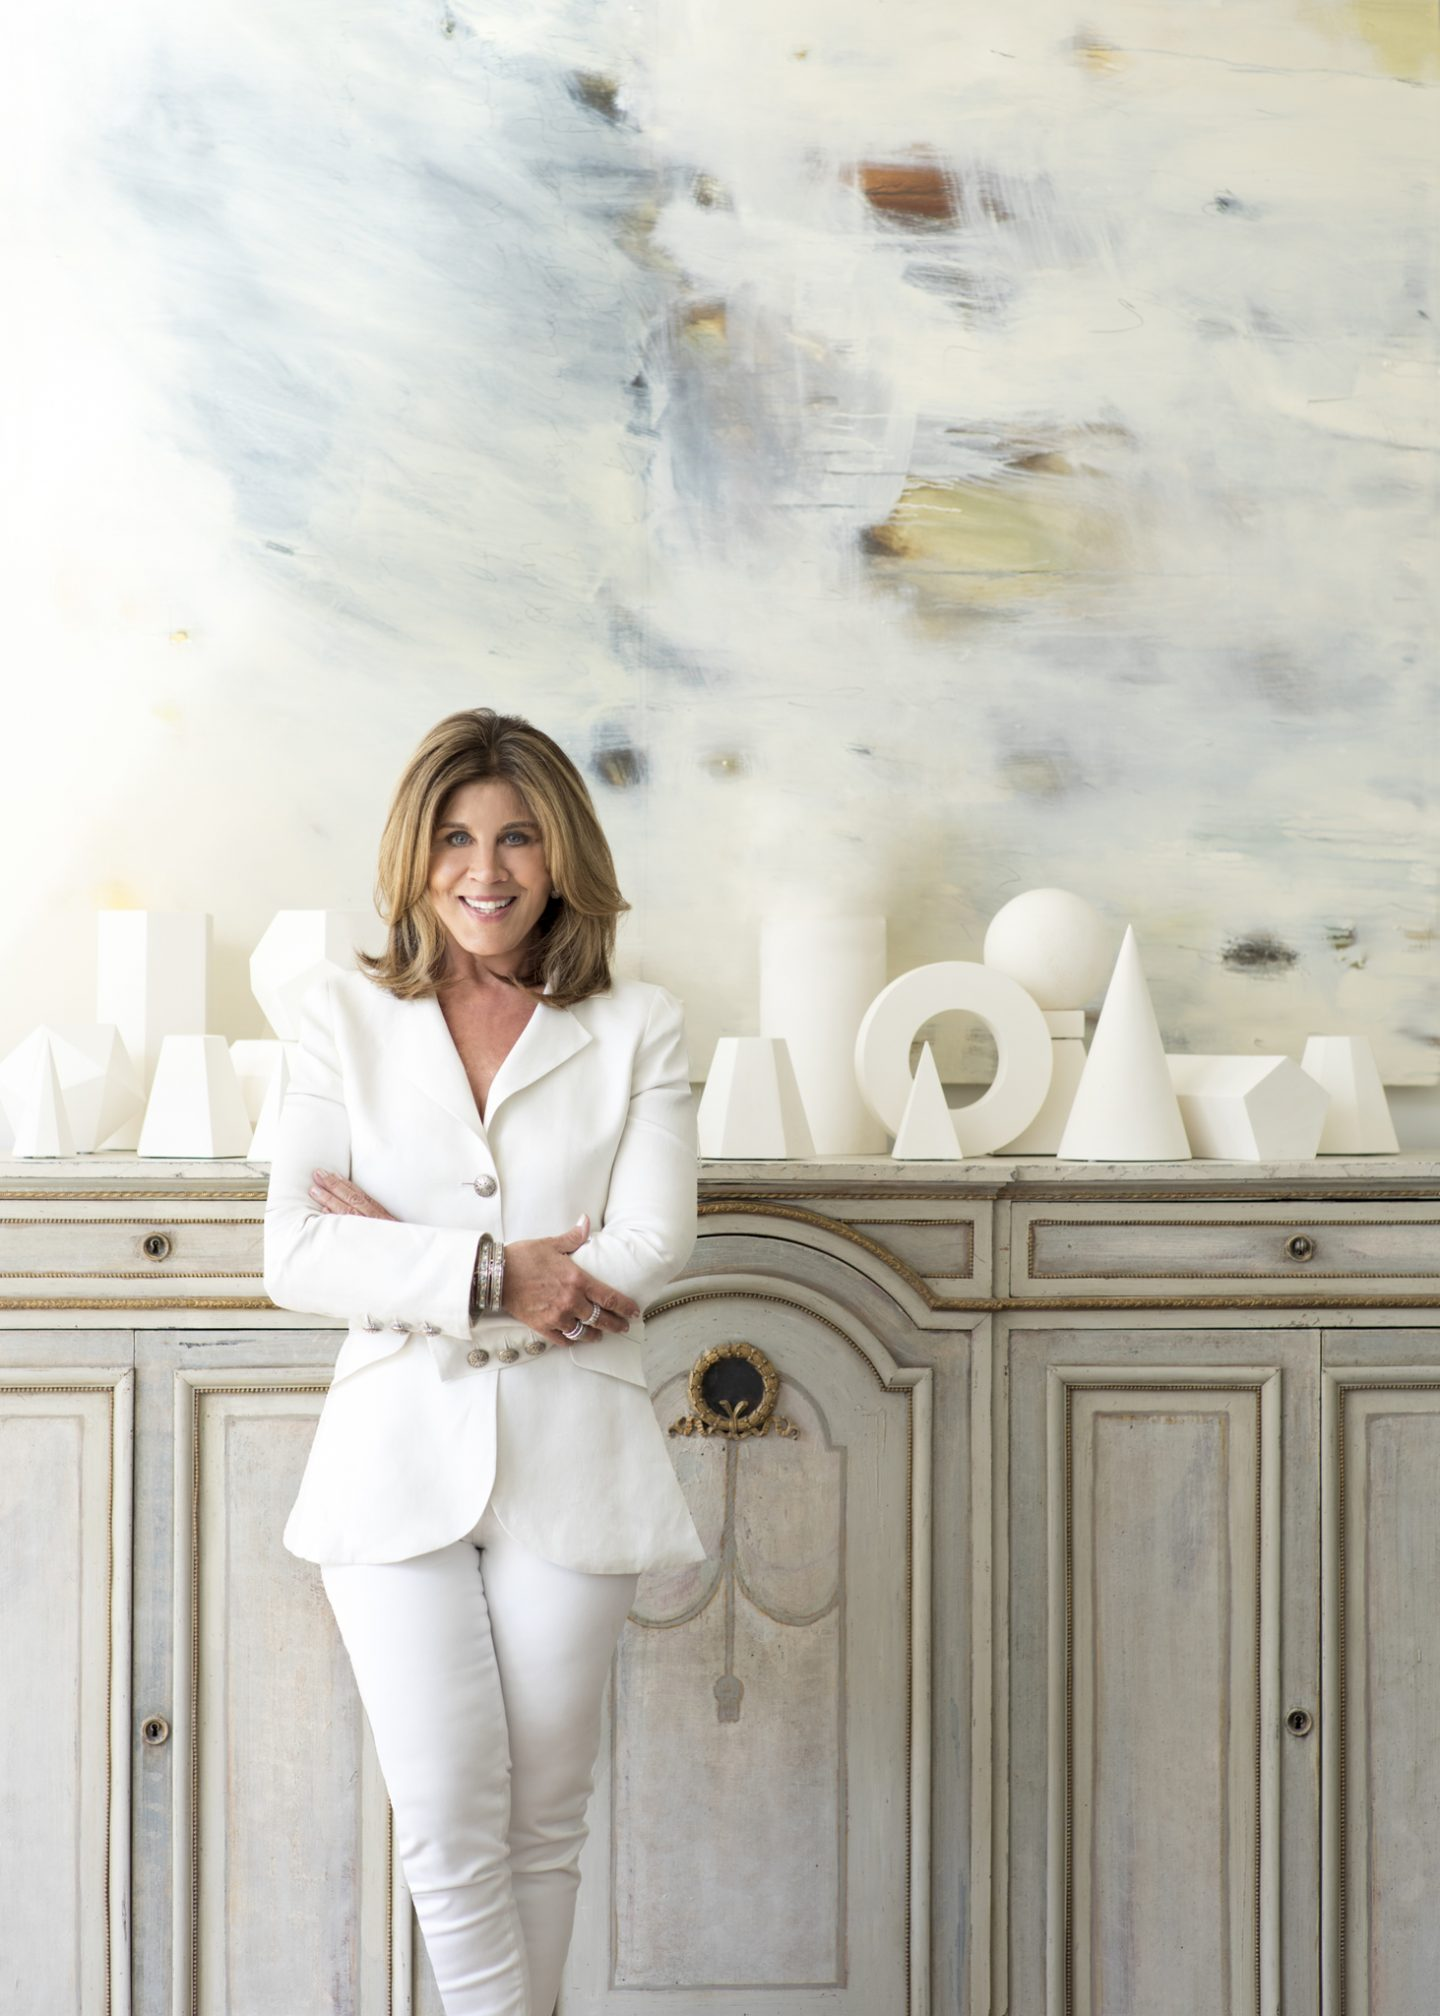 Suzanne Kasler is known for her award-winning projects featured in Milieu, Architectural Digest, Veranda, House Beautiful, and beyond. She has signature furniture collections and textile lines for Hickory Chair, Visual Comfort, Ballard Designs, Lee Jofa, and La Cornue.